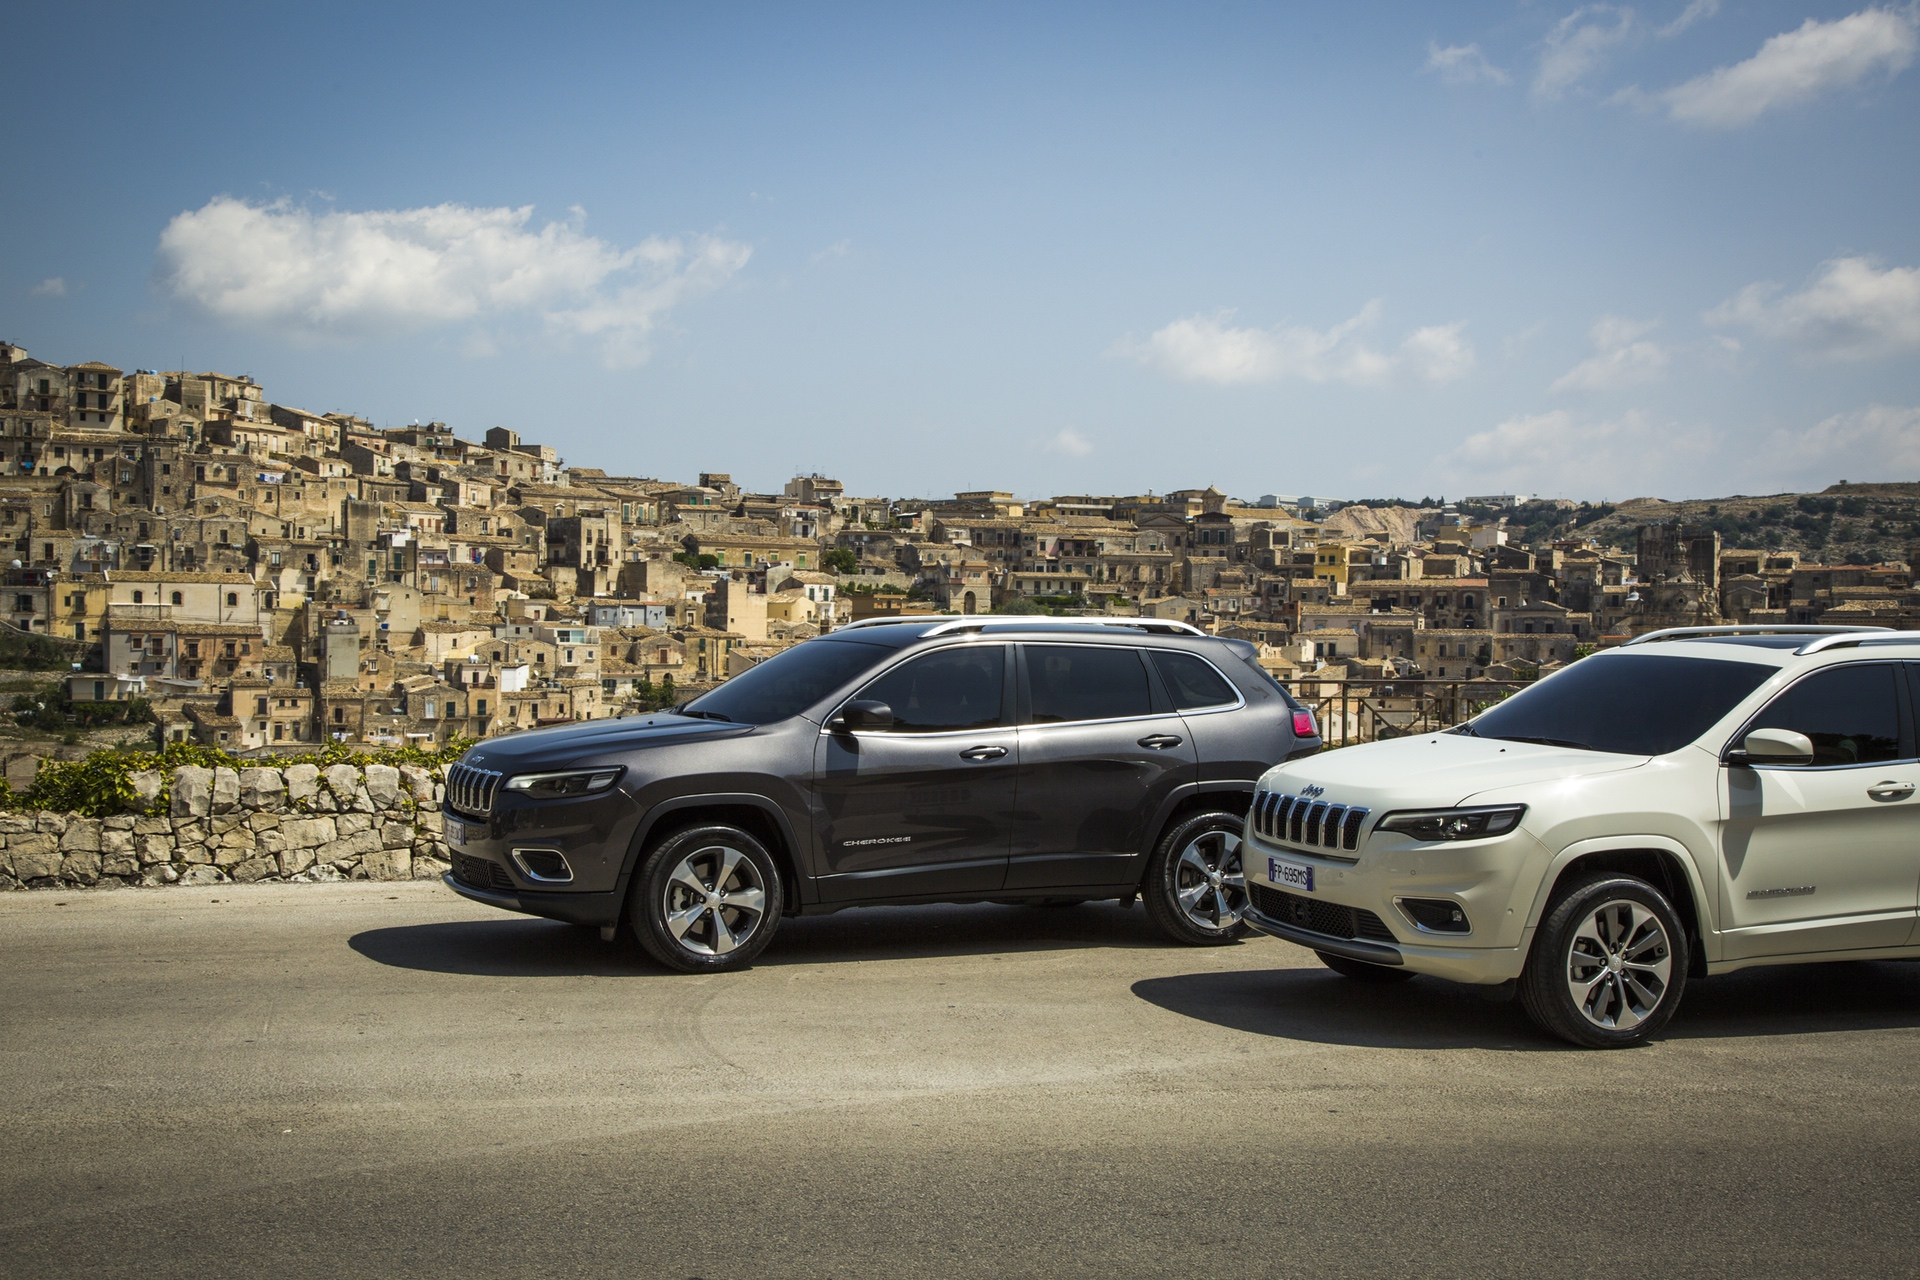 180906_Jeep_New-Cherokee-line-up_01